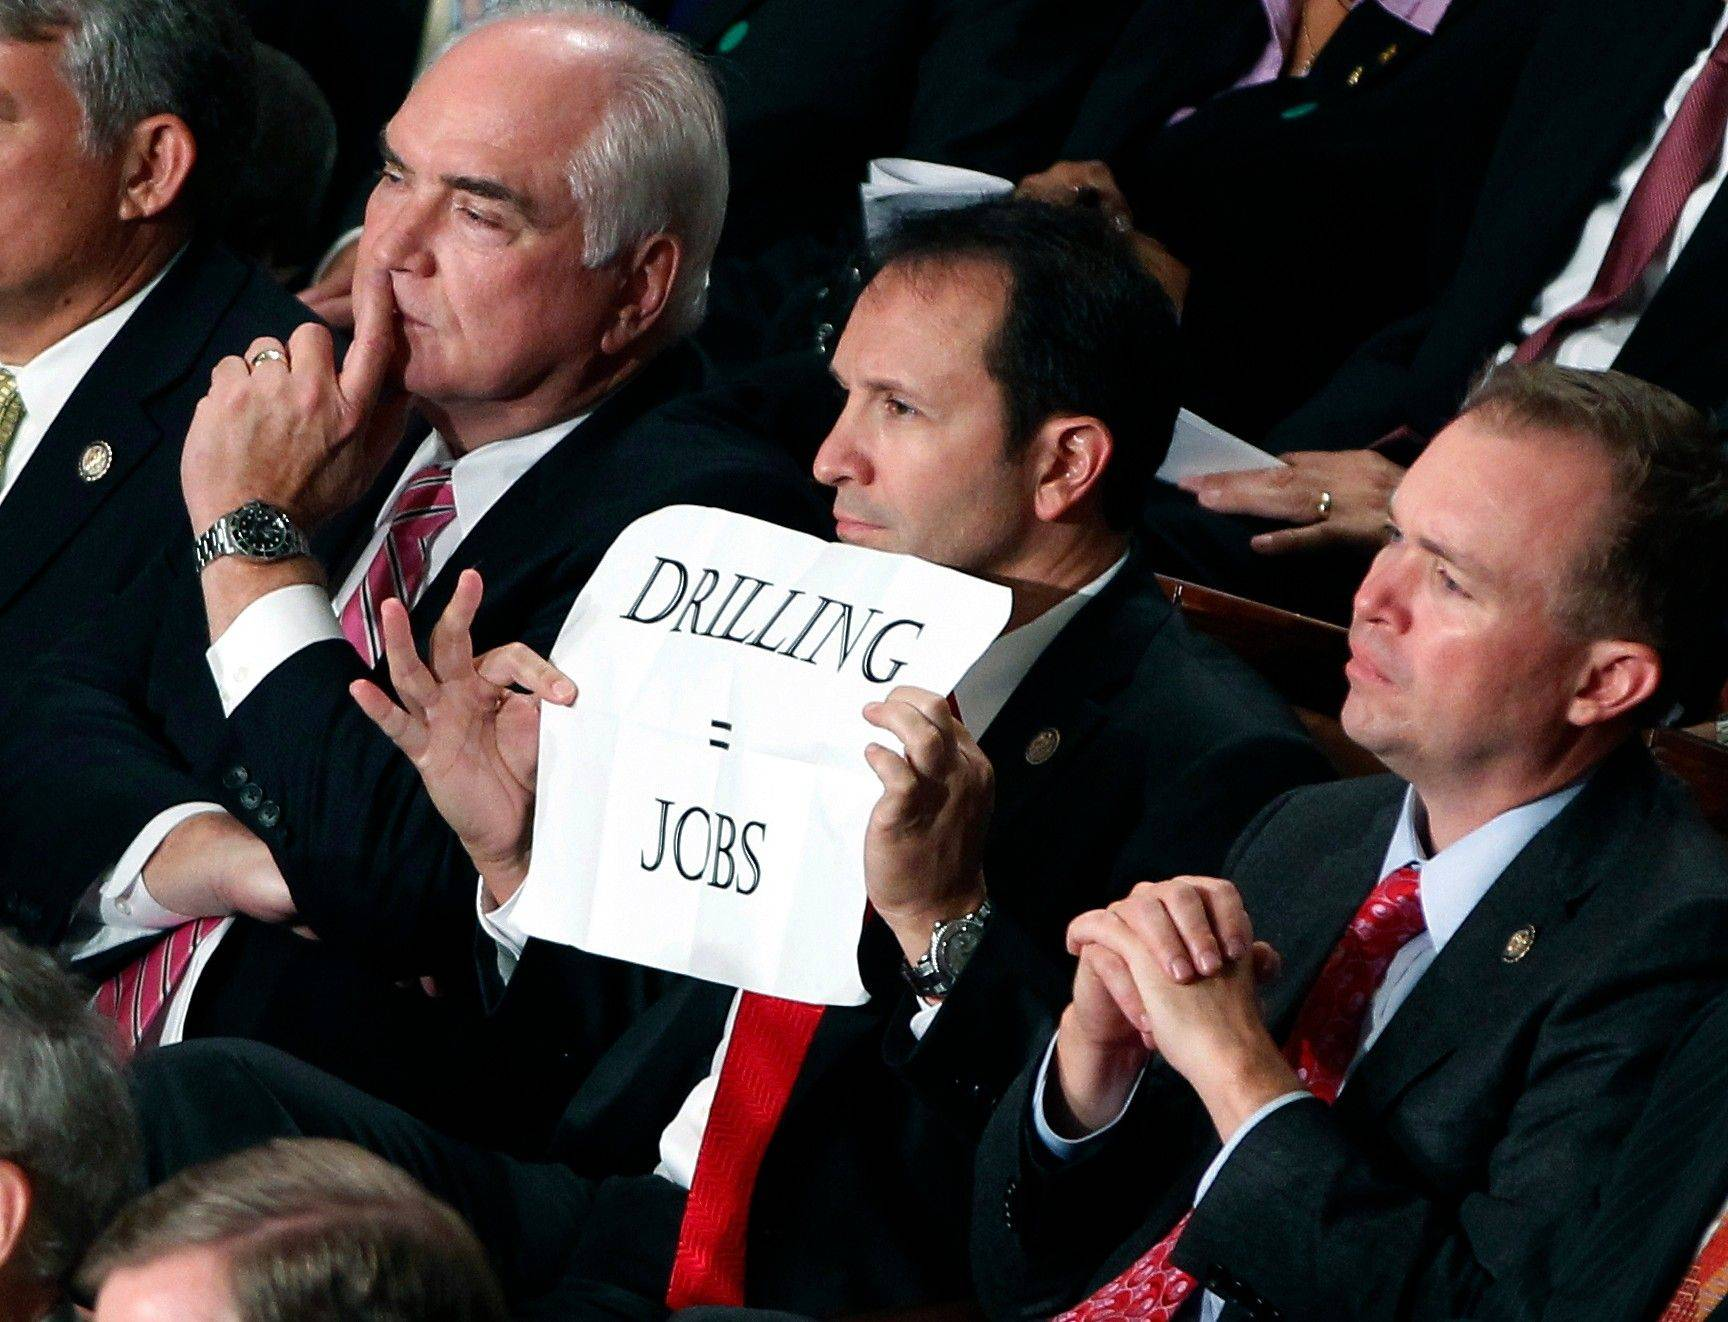 Rep. Jeff Landry, R-La., holds a sign during a speech by President Barack Obama to a joint session of Congress at the Capitol in Washington, Thursday, Sept. 8, 2011.